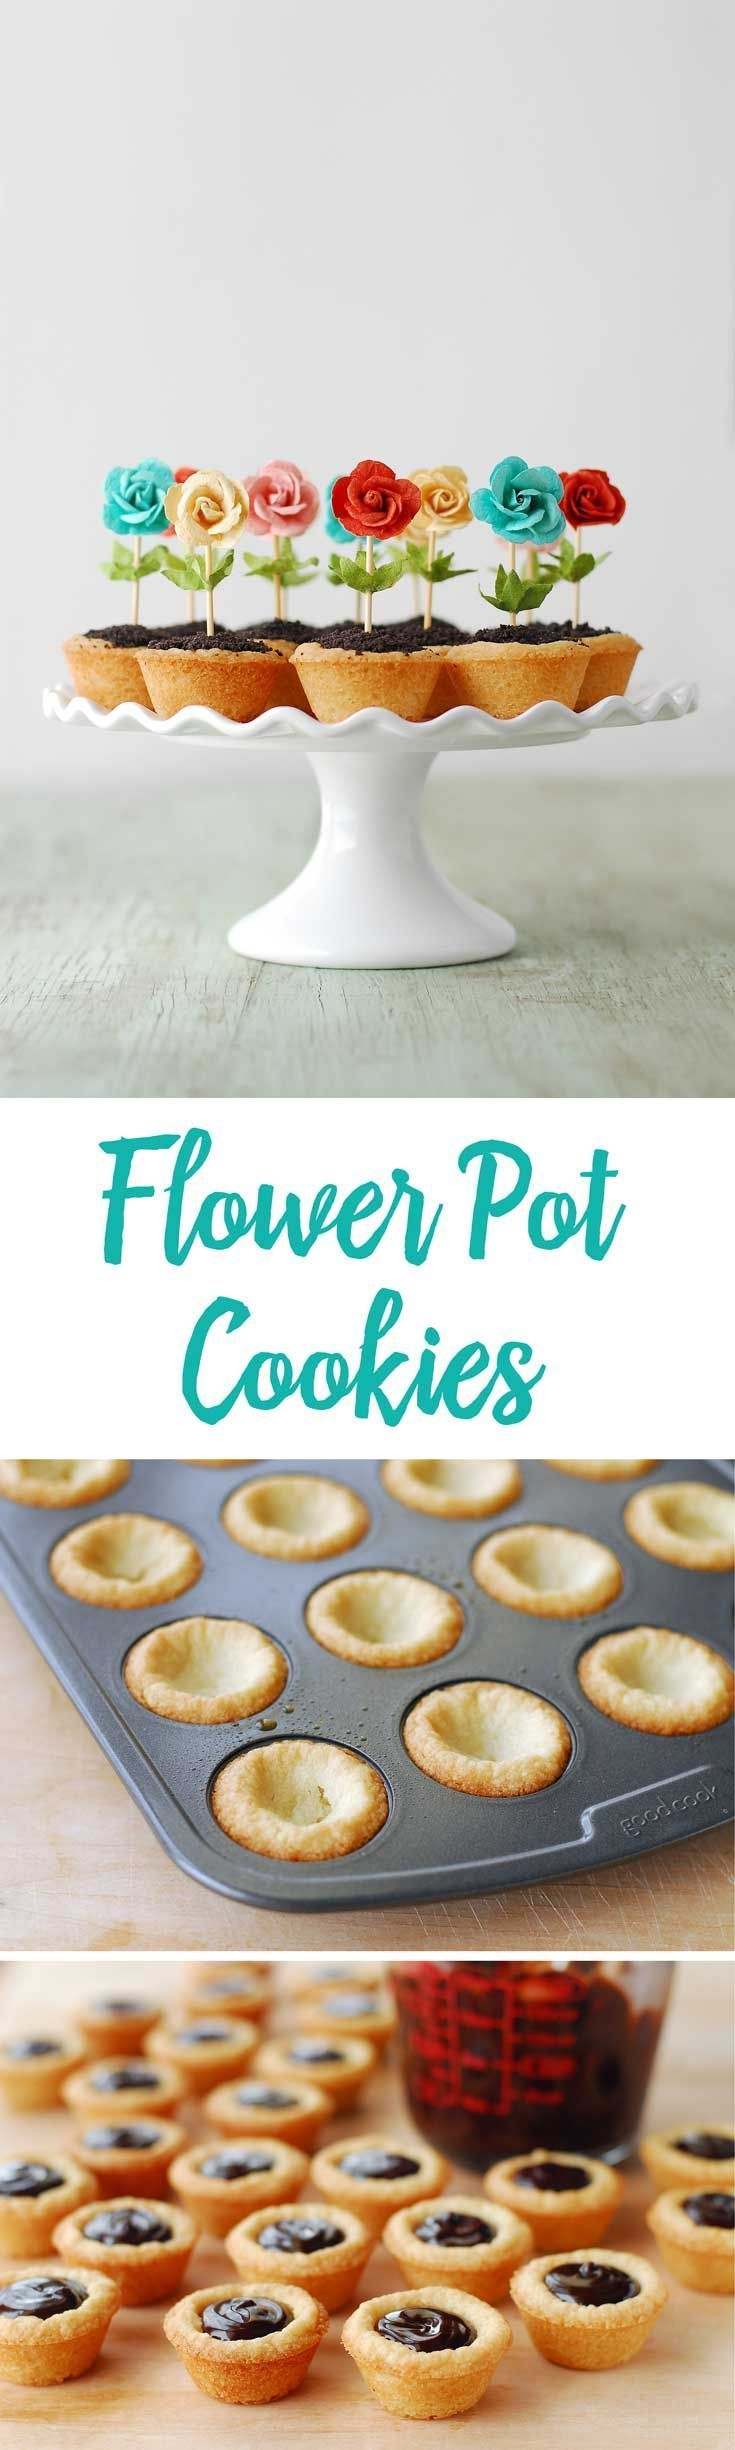 These Flower Pot Cookies are perfect for spring! The bright colors pop and the easy recipe makes them a fun party idea. The cookies cups are filled with chocolate ganache and cookie crumbs!